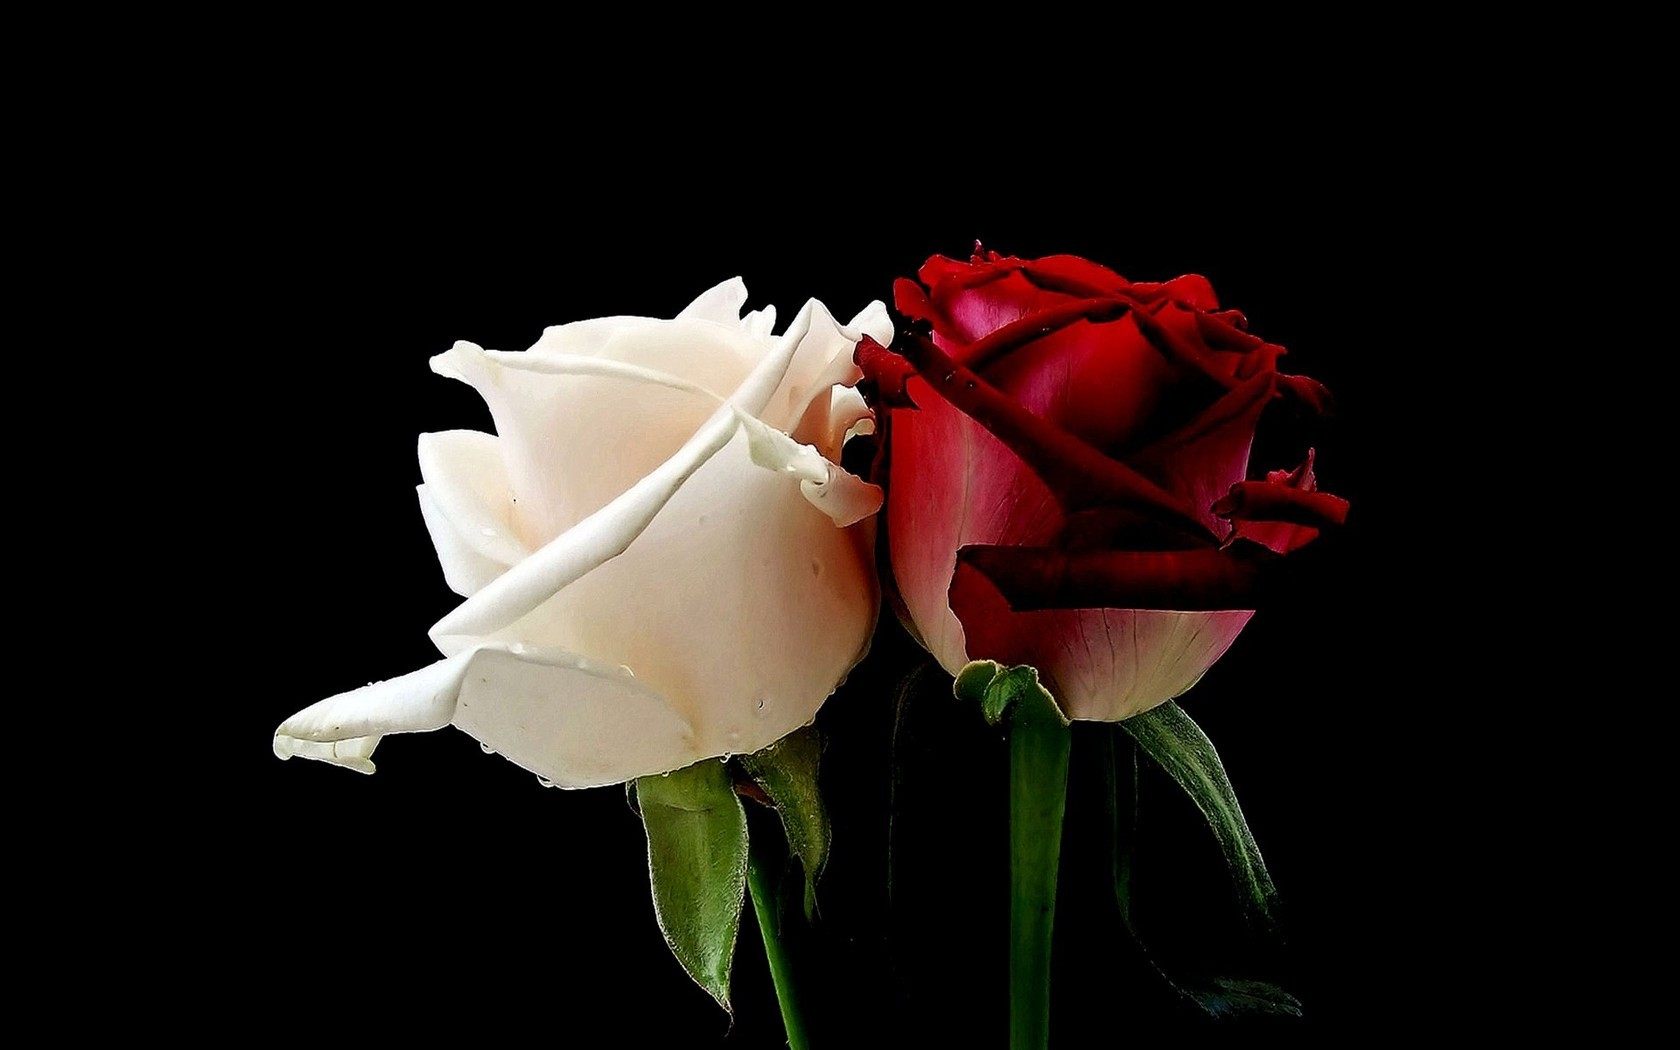 Hd Red Rose Wallpaper Wallpapersafari